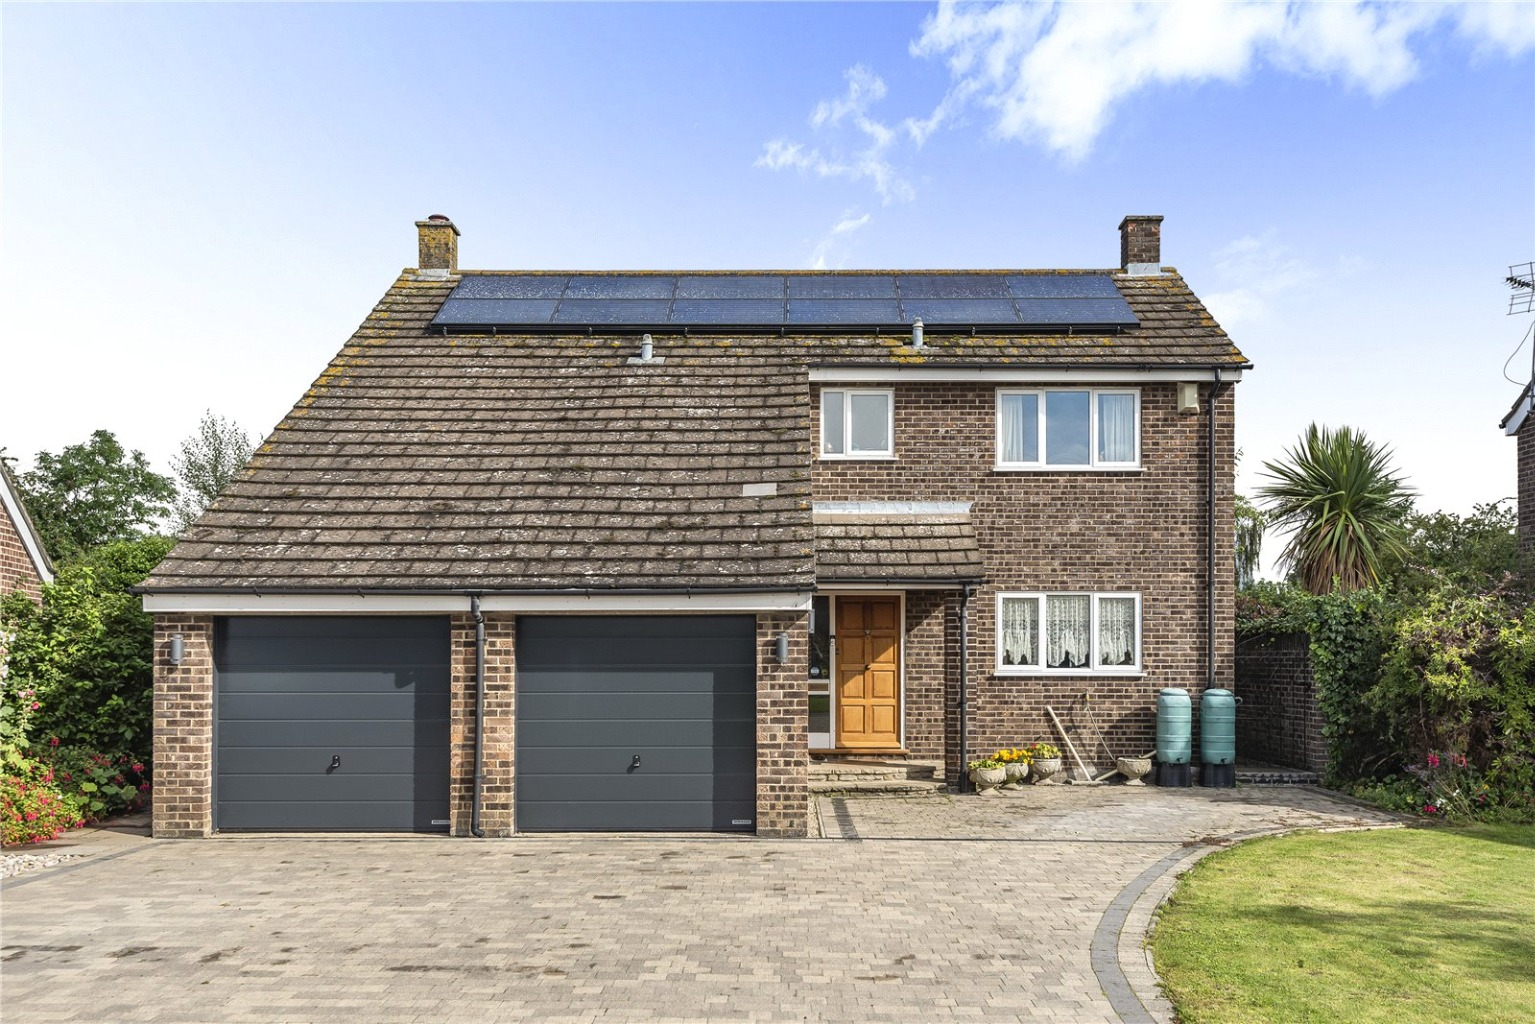 Coming to the market for the first time since being built in the 1970's, Signature Homes is delighted to offer a fantastic opportunity for the right buyer to acquire this spacious four-bedroom detached home in the pretty Cambridgeshire village of Over.